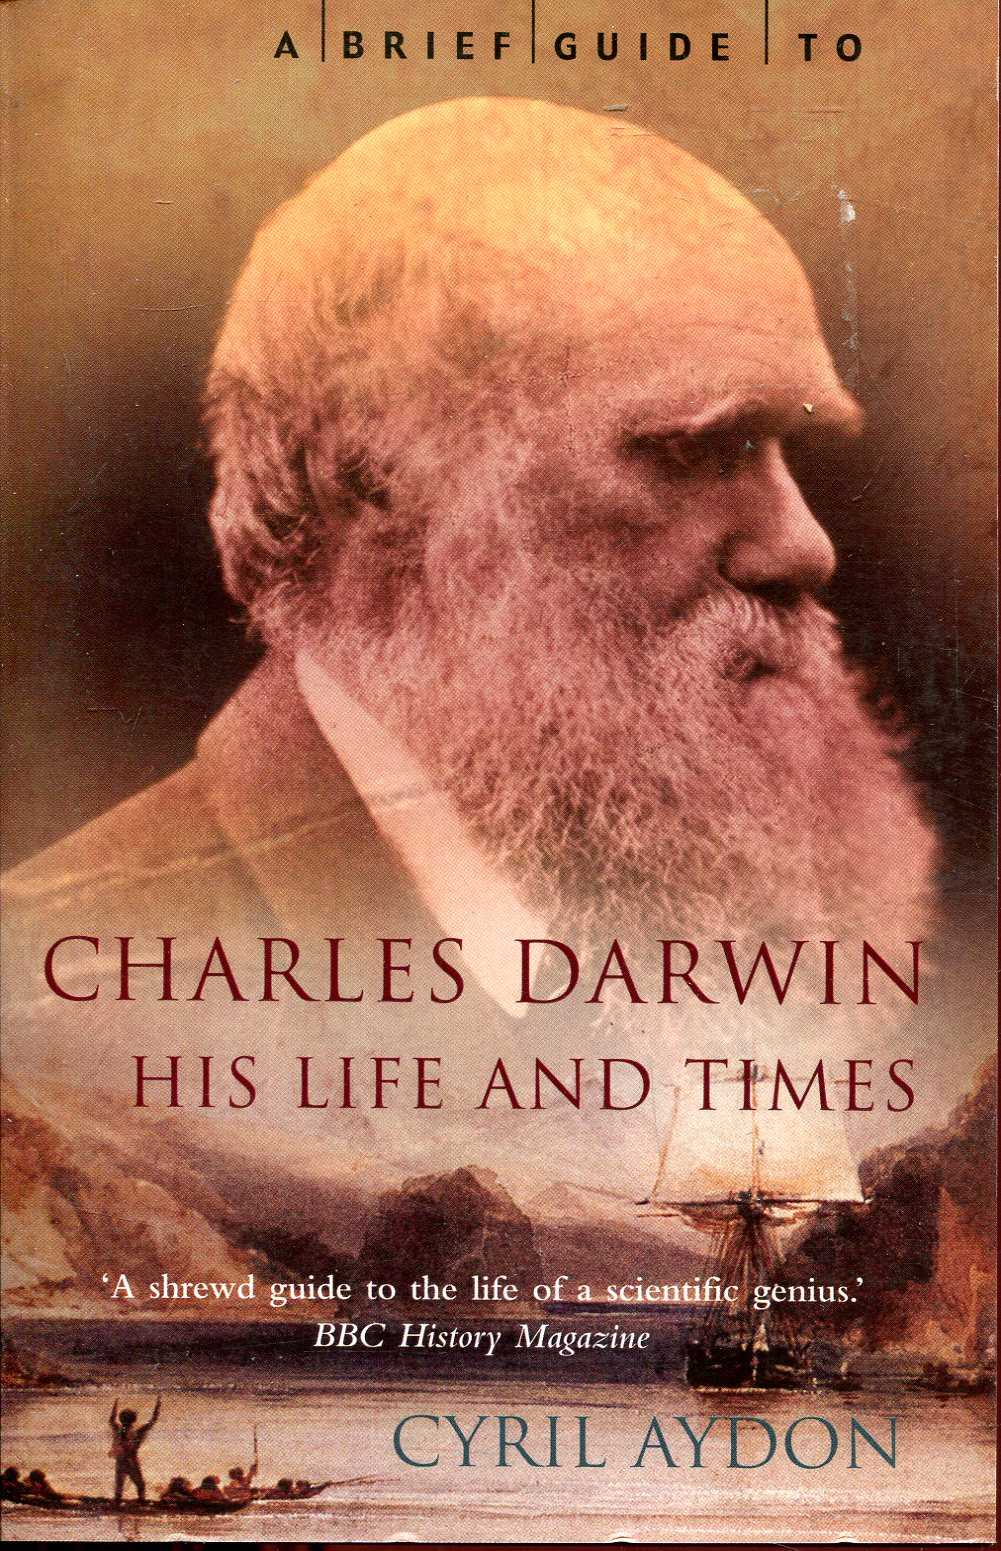 Image for A Brief Guide to Charles Darwin, his life and times